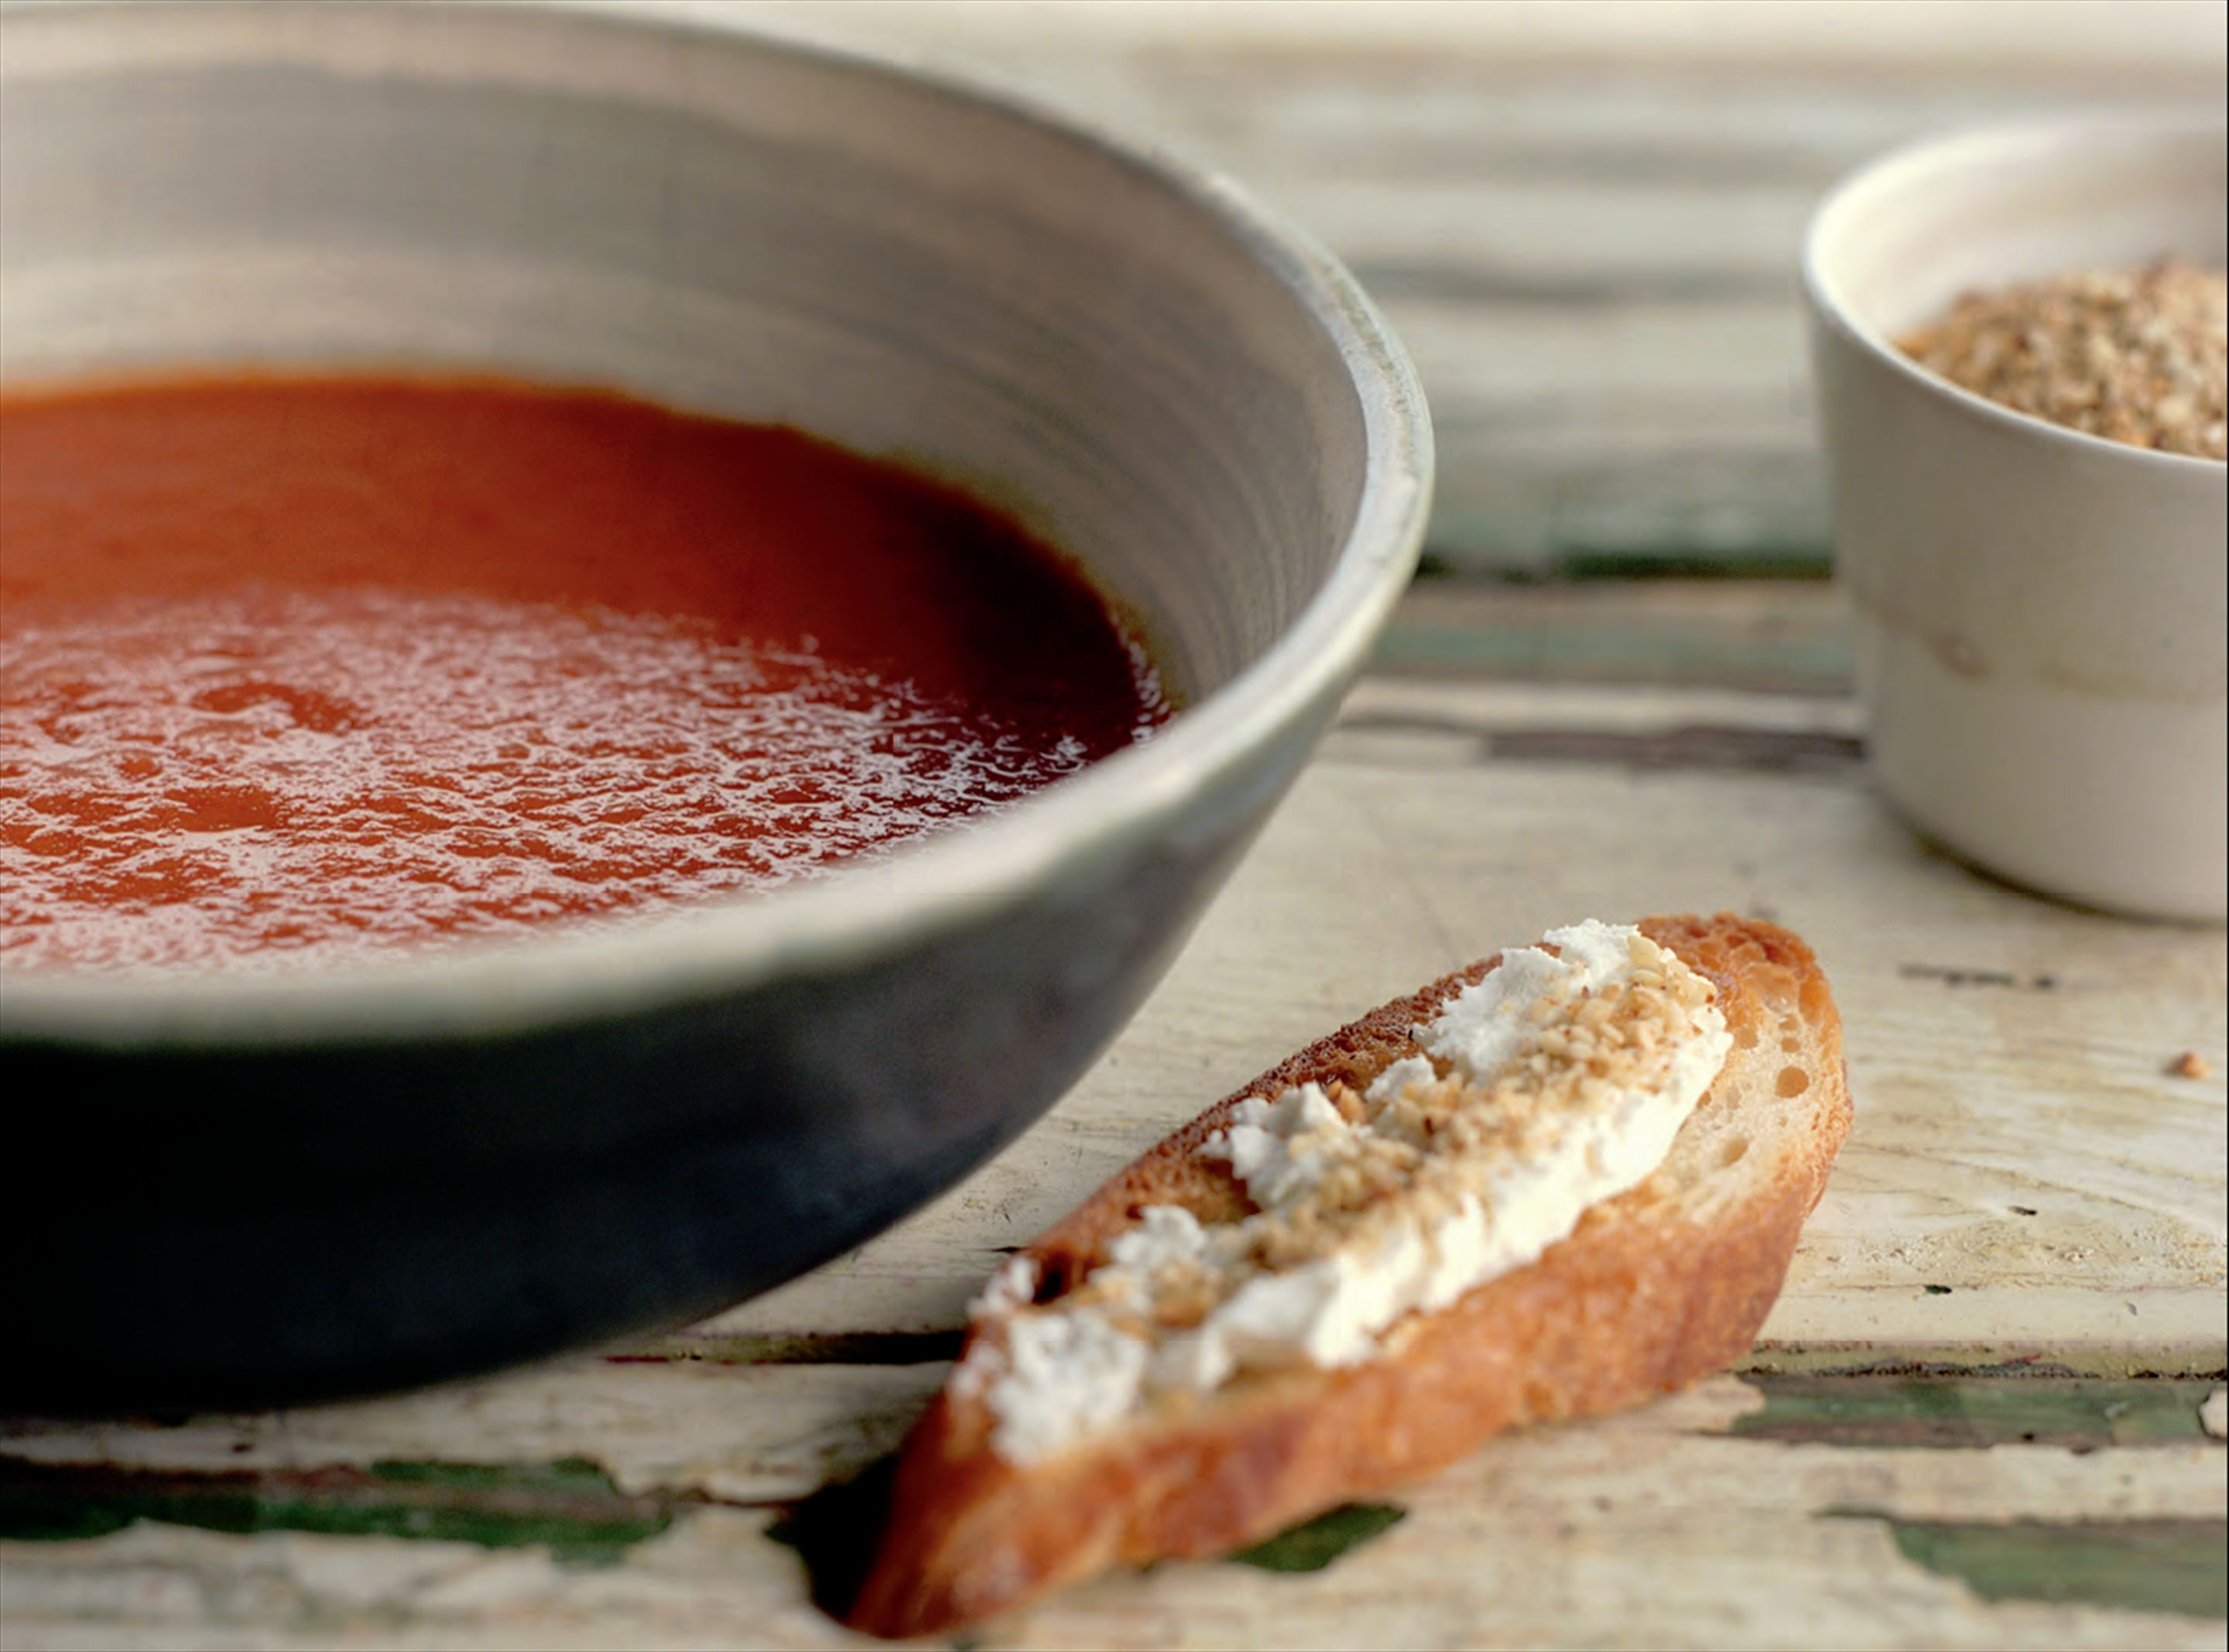 Roasted tomato and red capsicum soup with dukkah